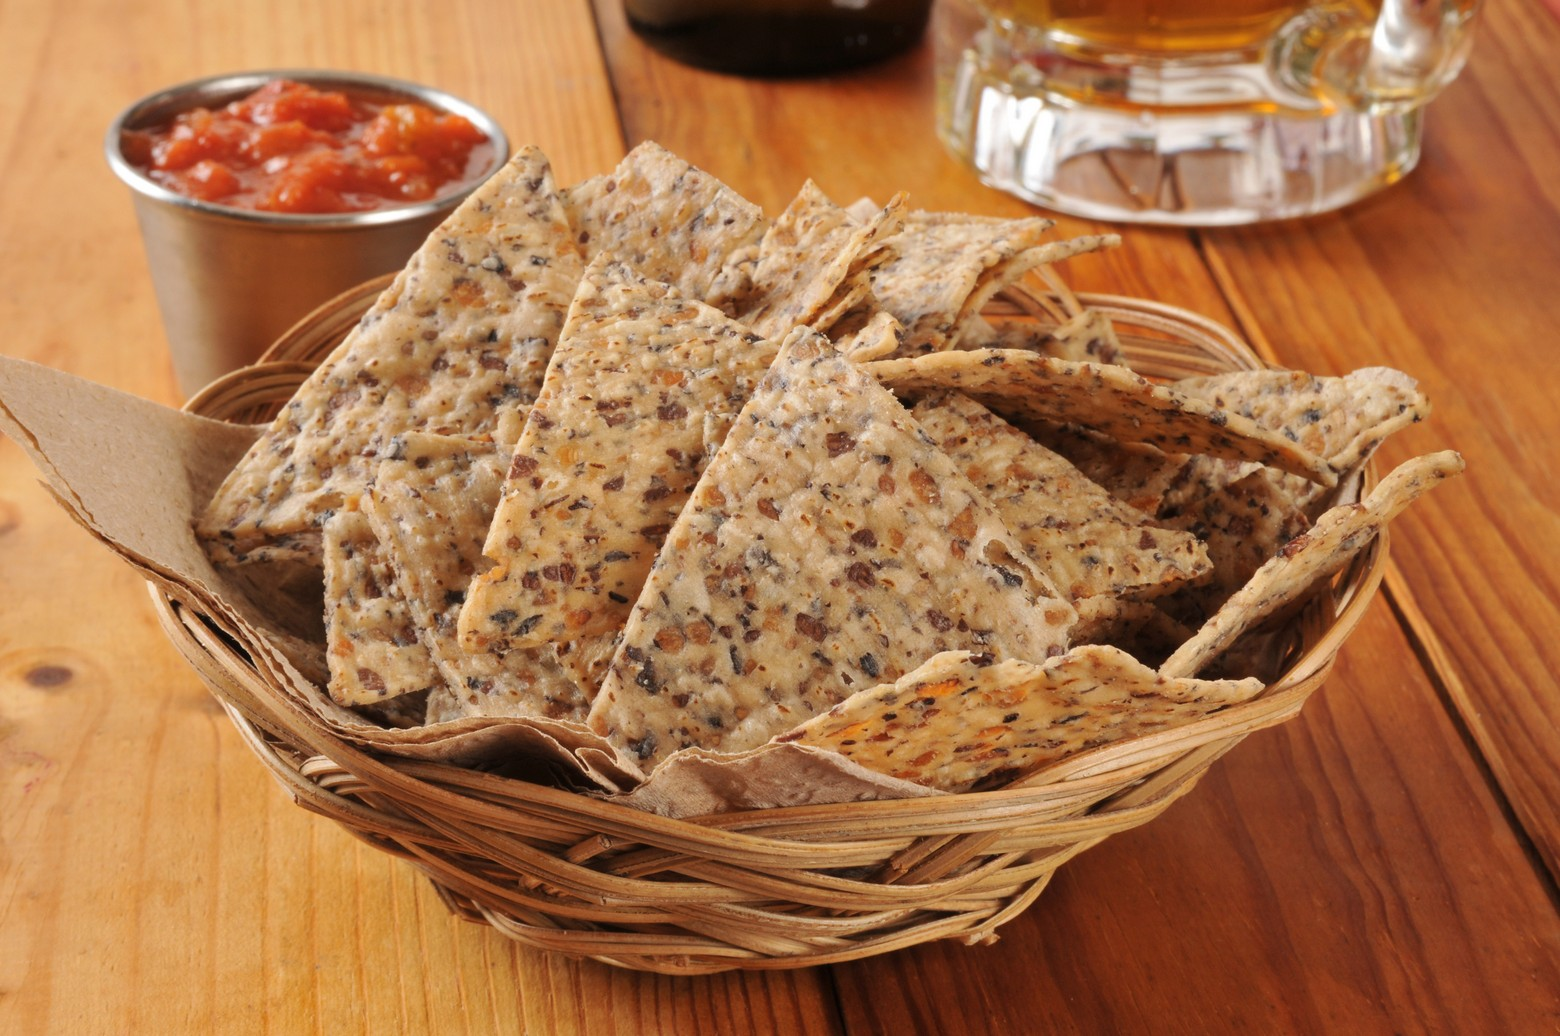 Healthy Snack Alternatives in Gaithersburg, MD